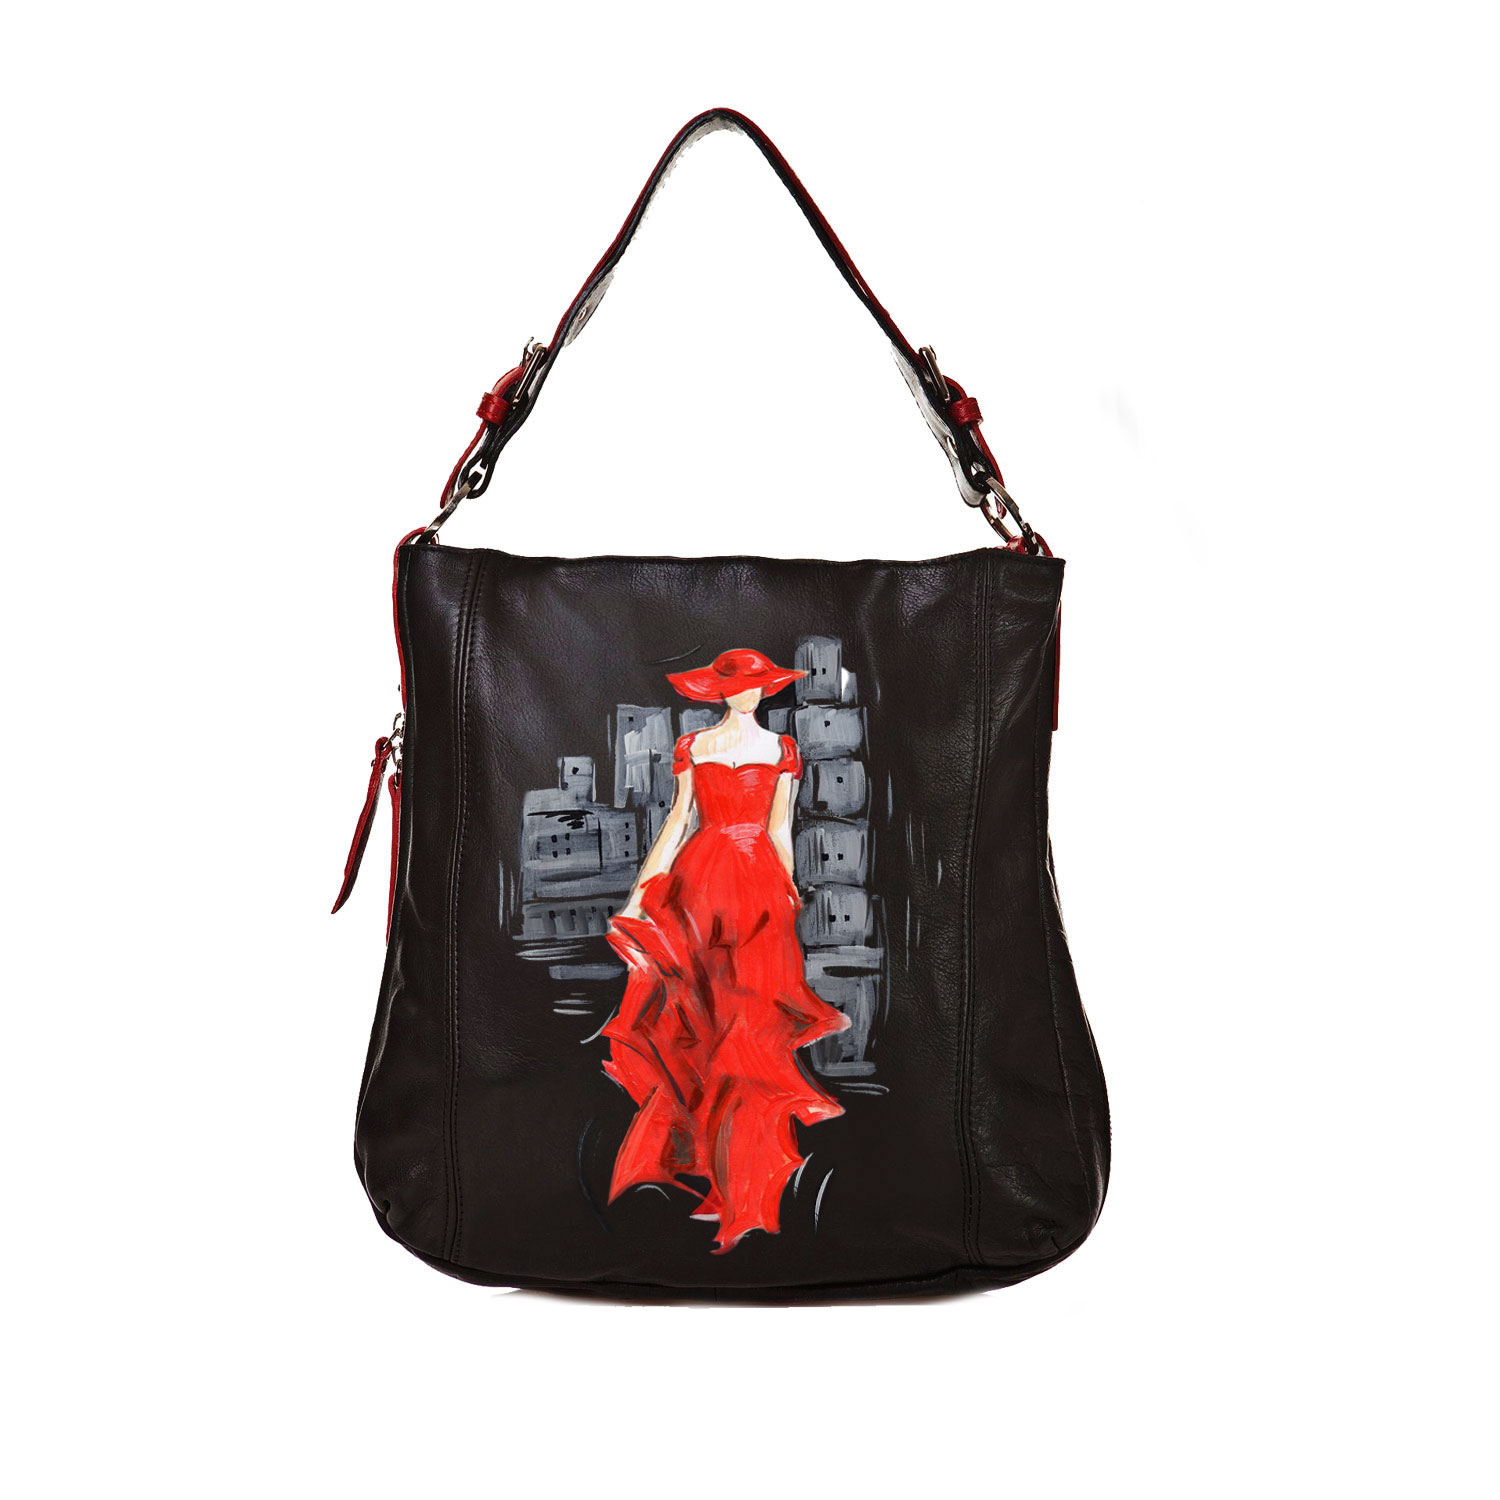 Borsa dipinta a mano - Lady in red